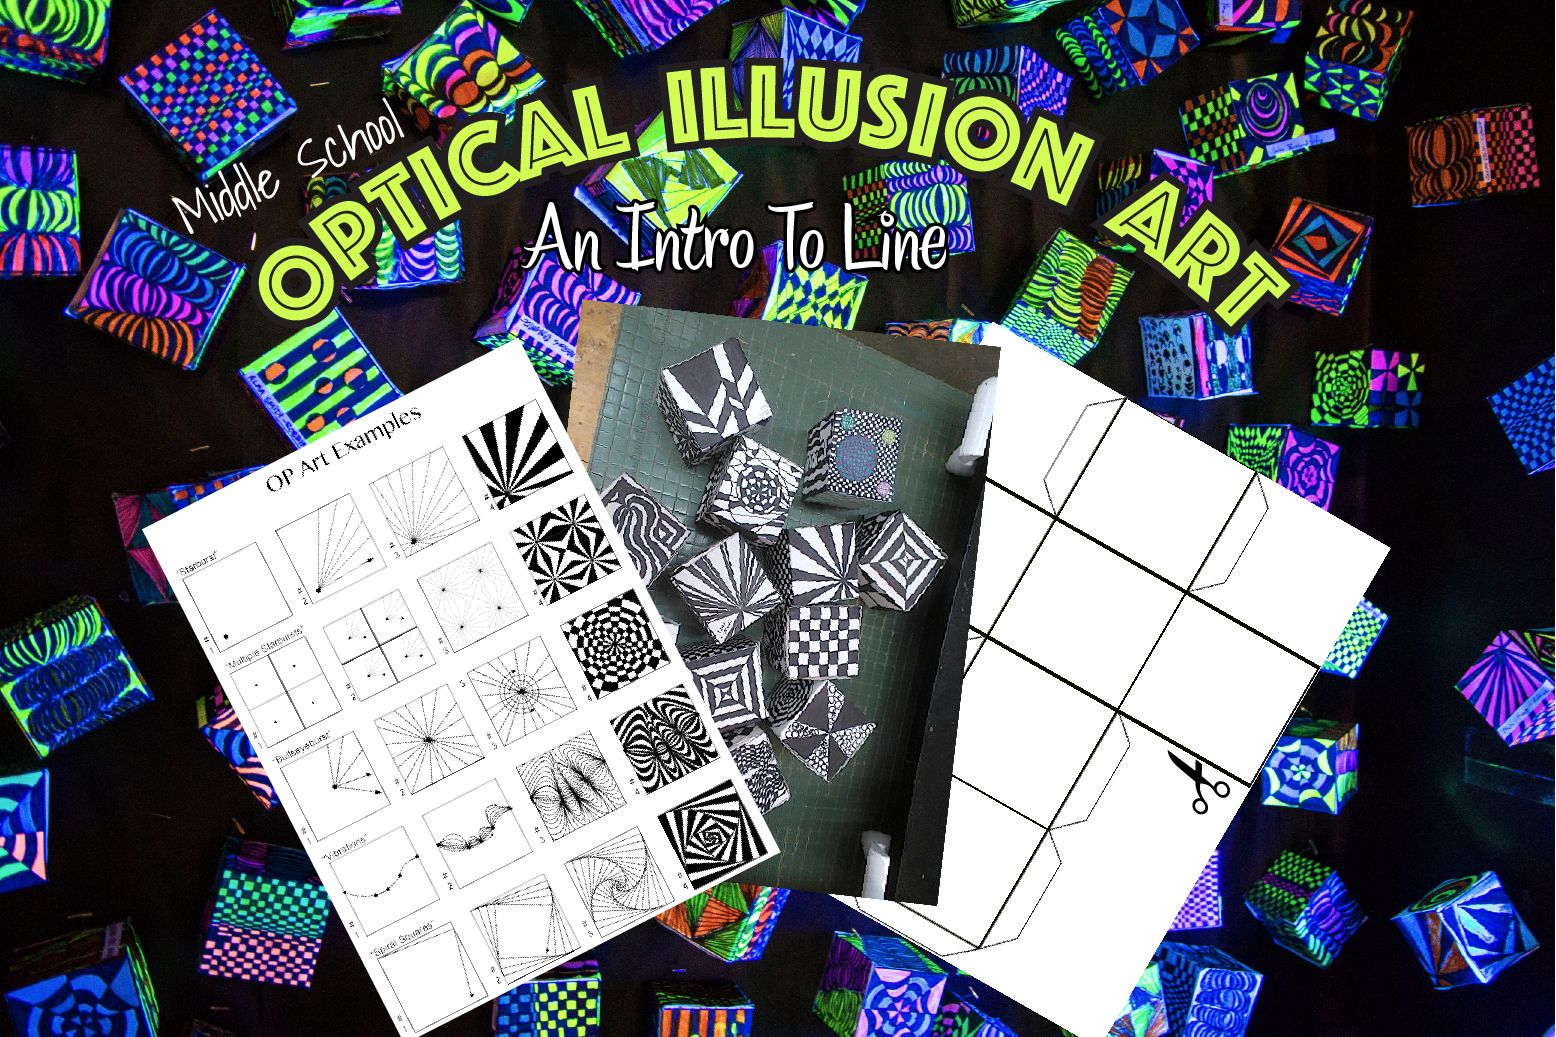 Optical Illusion Art Op Art Amp An Intro To Line